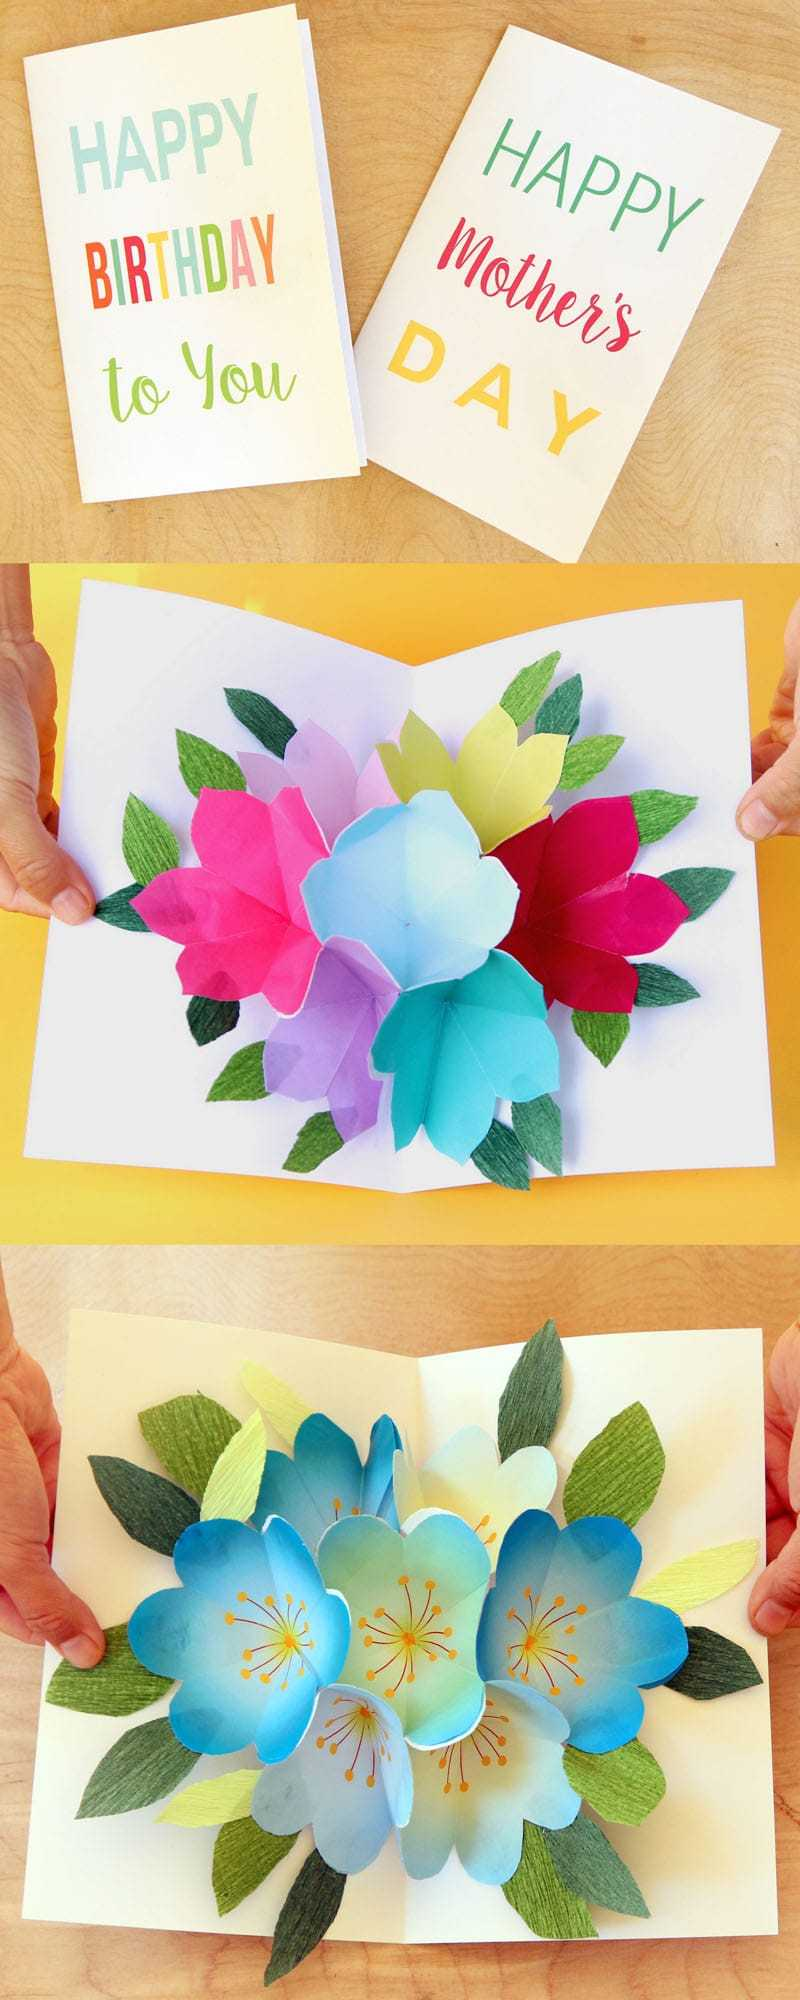 Free Printable Happy Birthday Card With Pop Up Bouquet - A regarding Mom Birthday Card Template